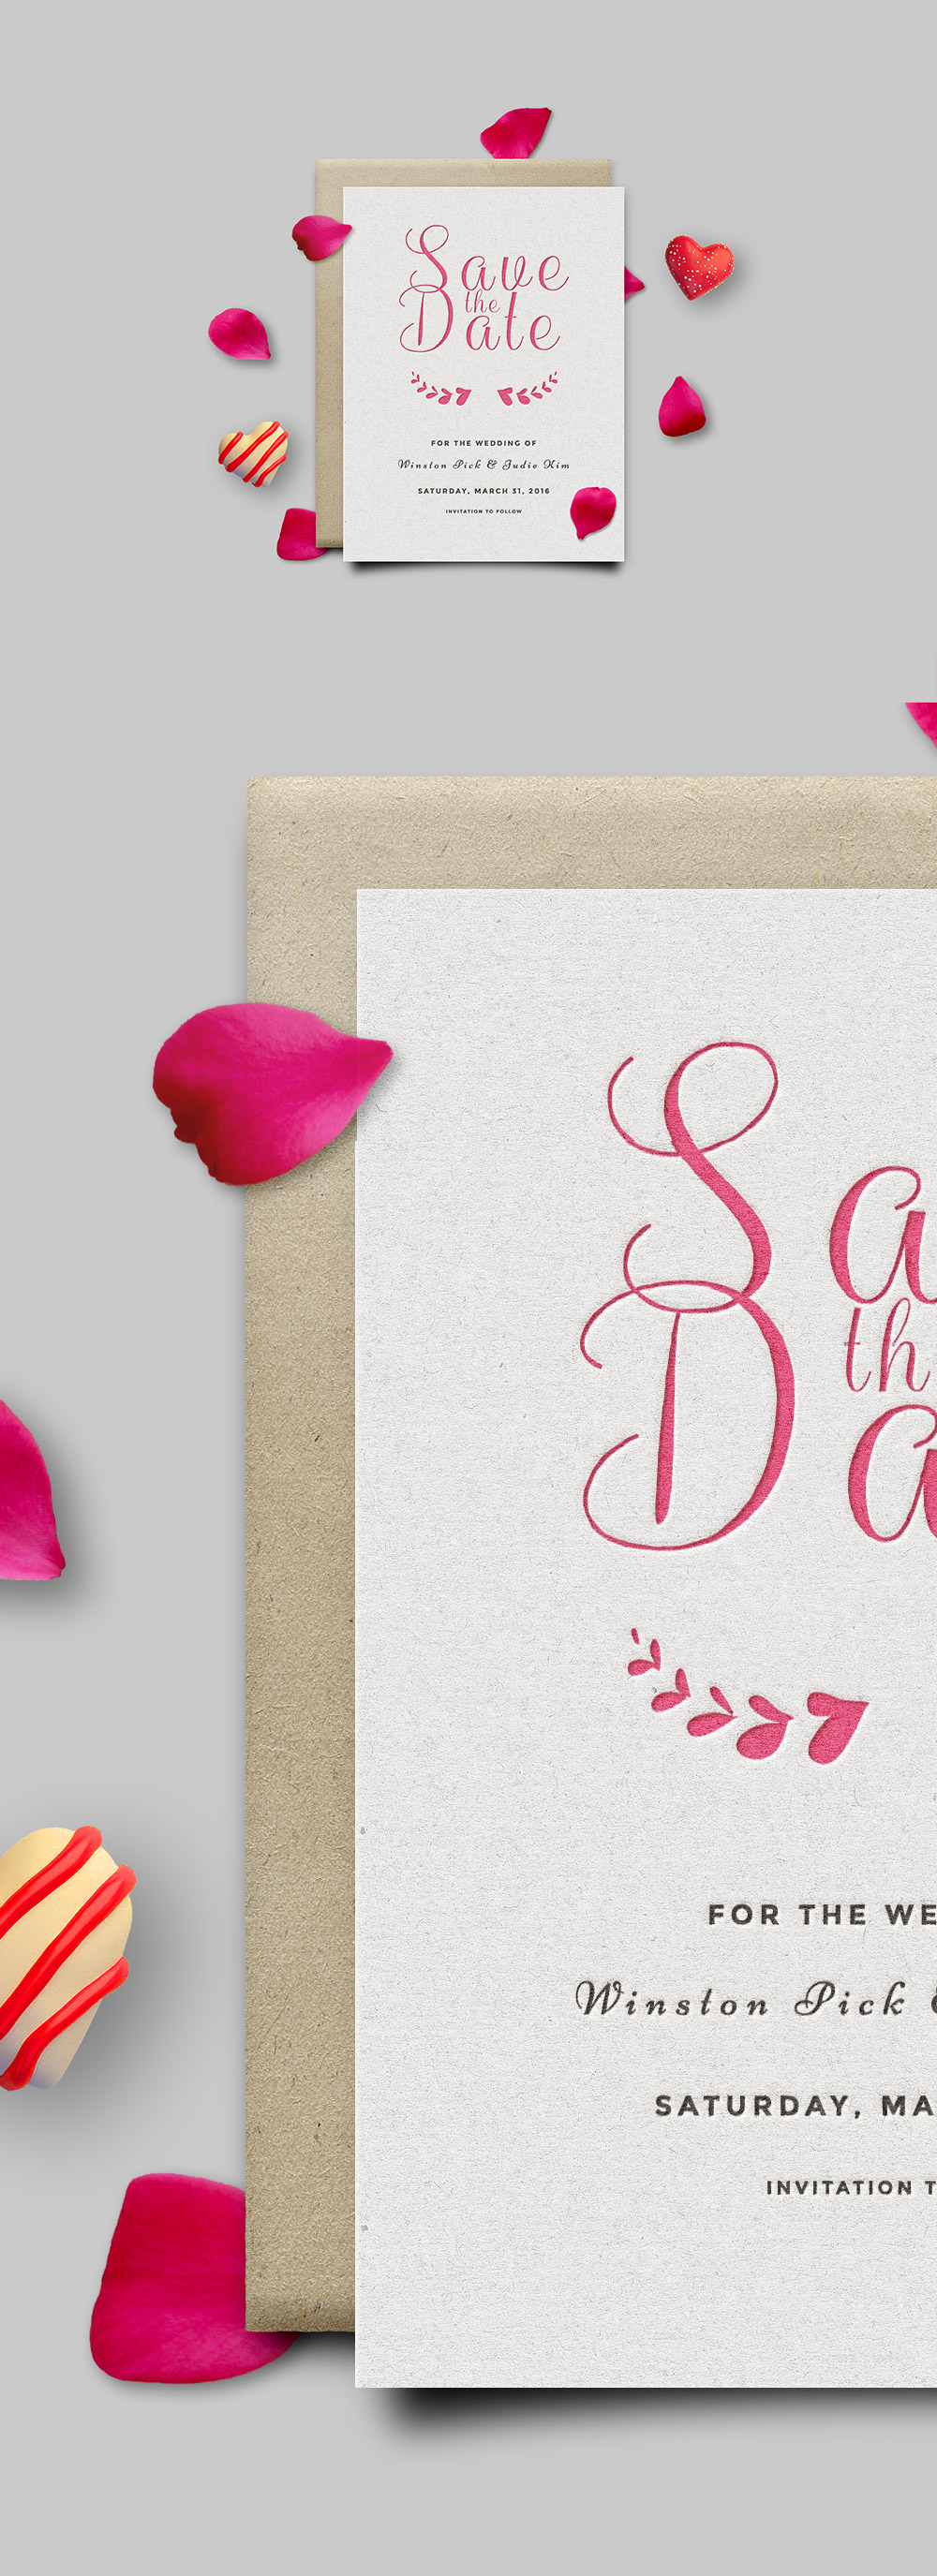 Save The Date Invitation Card Mockup